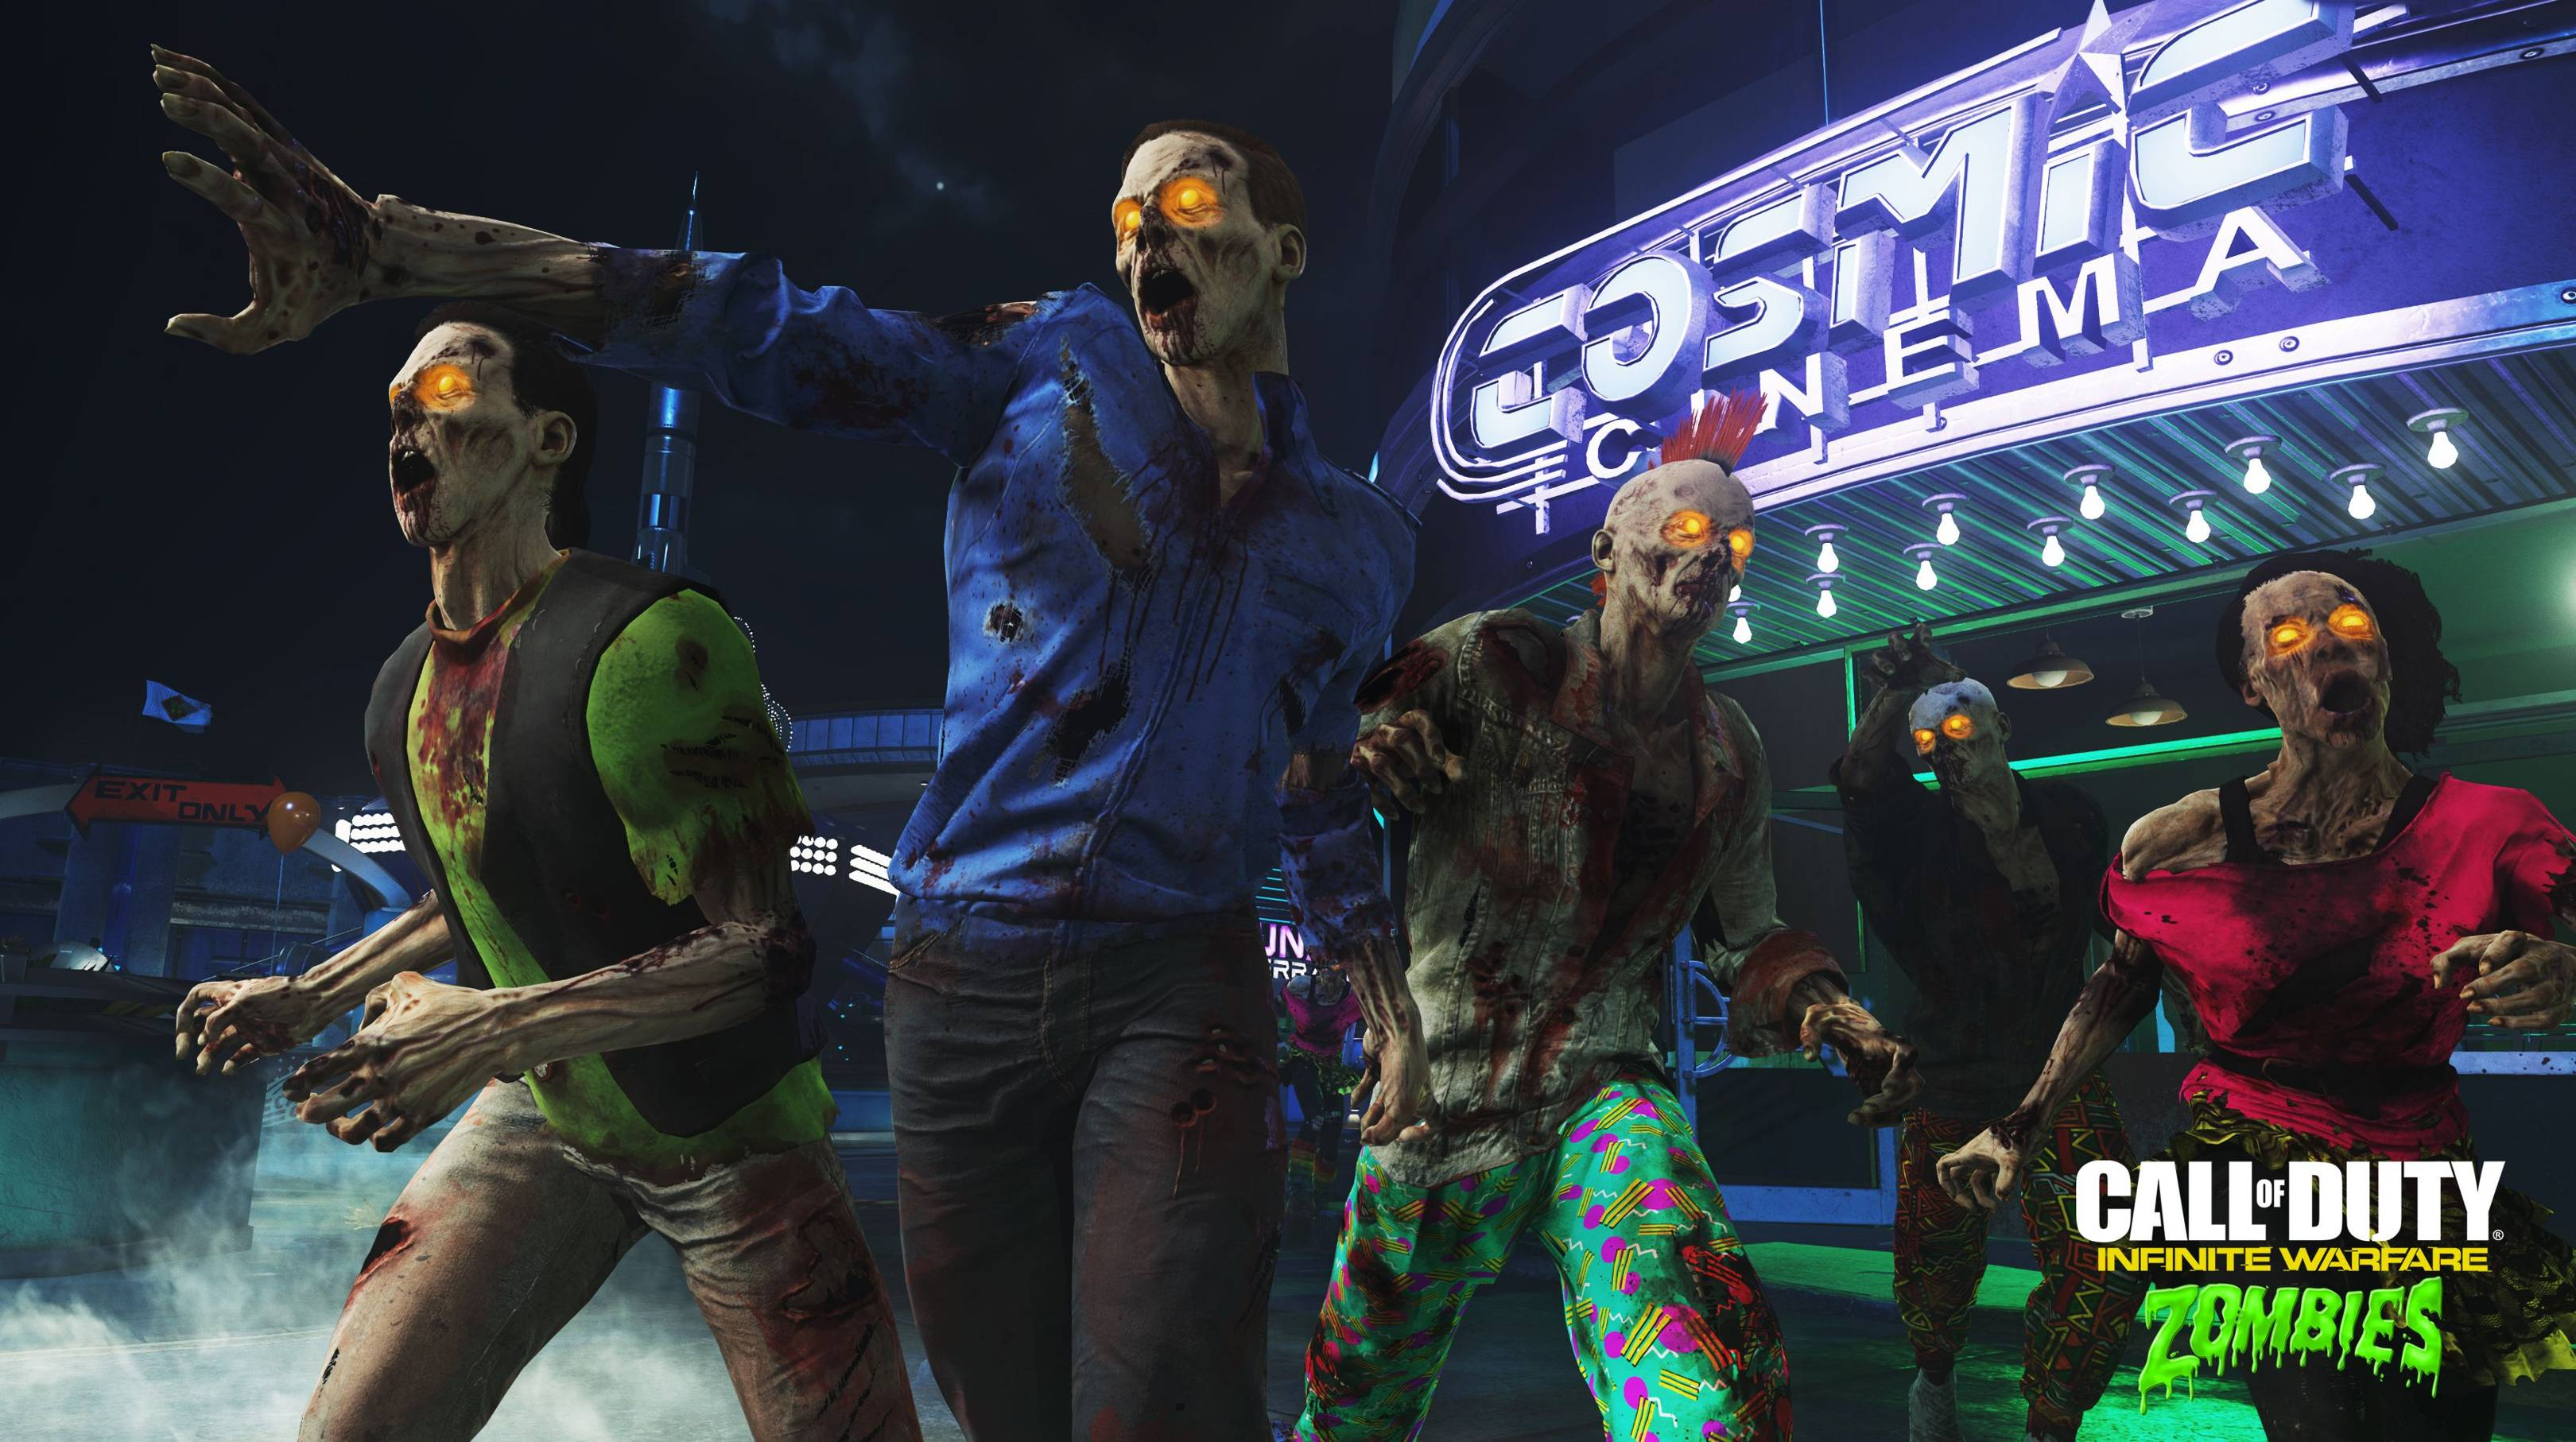 Call of Duty: Zombies in Spaceland hands-on review | WIRED UK Zombies Spaceland Call Of Duty Map on red dead redemption zombie maps, real zombie maps, call of duty 3 maps, world at war zombie maps, call of duty mp maps, call of duty 4 maps, cod zombie maps, call of duty waw maps, minecraft zombie maps, call of duty: modern warfare 3, call of duty custom maps, halo zombie maps, call of duty advanced warfare maps, call of duty: finest hour, call of duty ghosts maps, call duty black ops zombie maps, left 4 dead zombie maps, call of duty 2 maps, black ops 2 maps, call of duty: roads to victory,